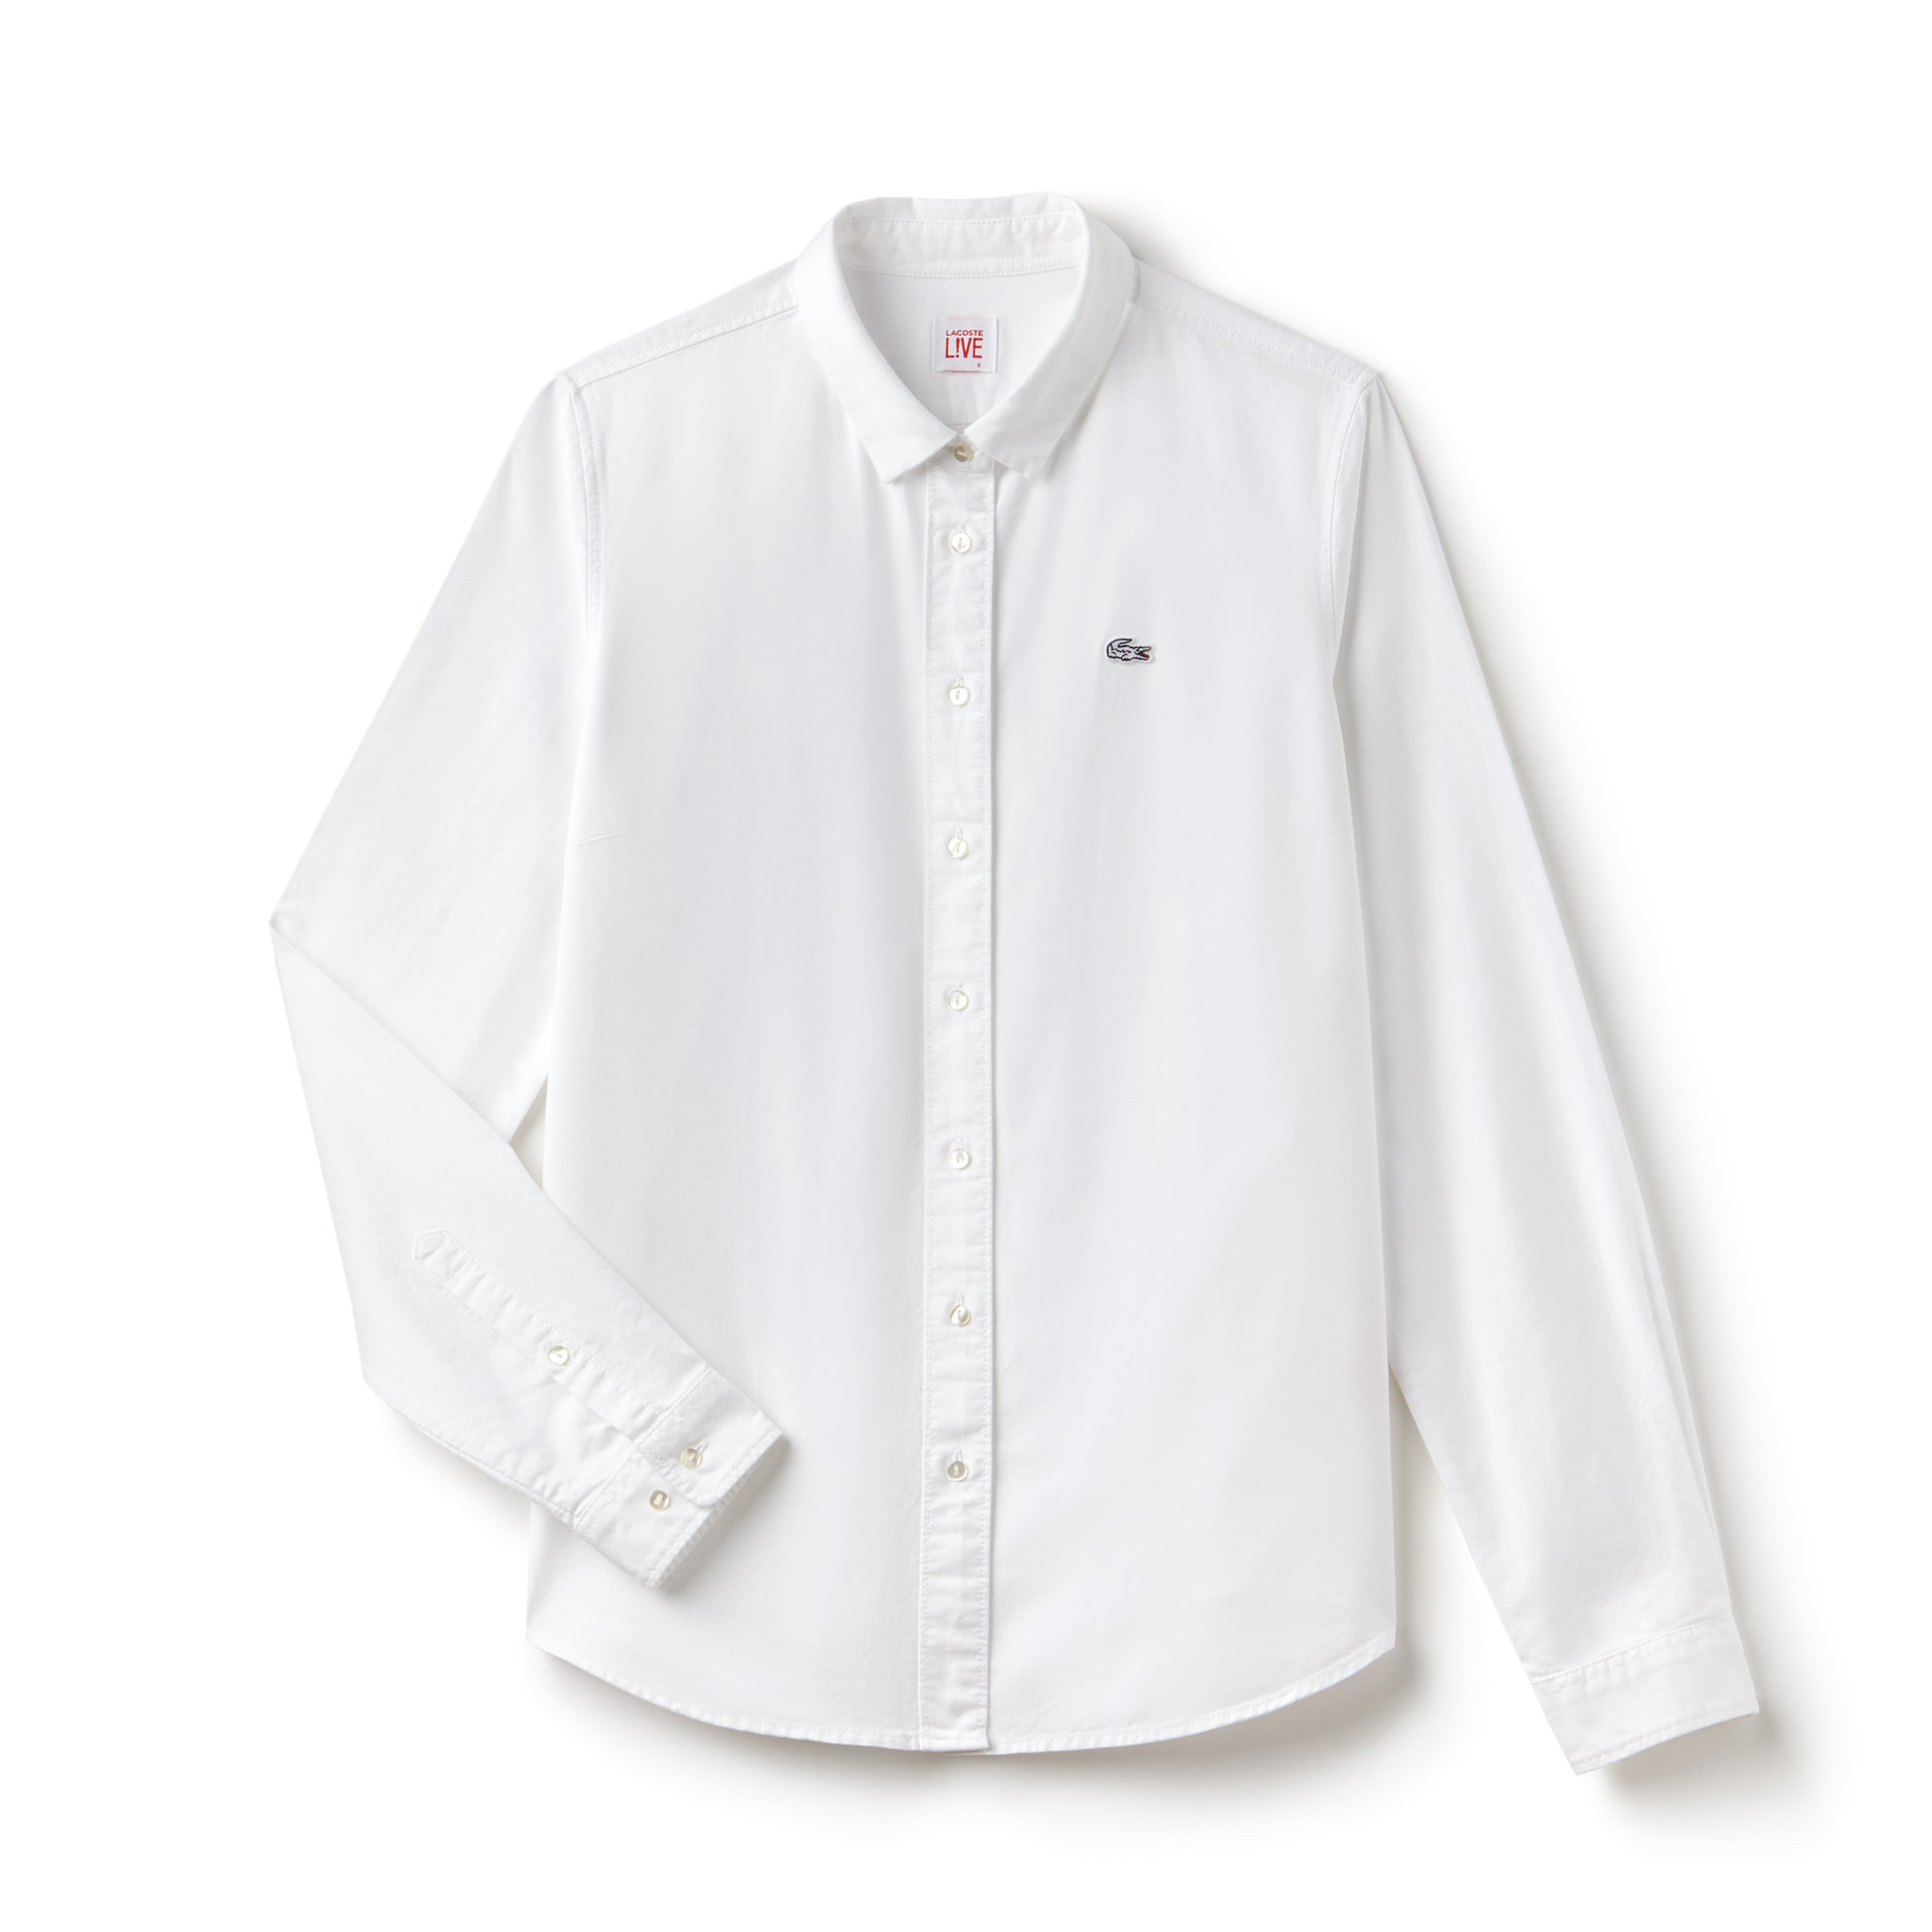 Women's Lacoste LIVE Slim Fit Oxford Cotton Shirt